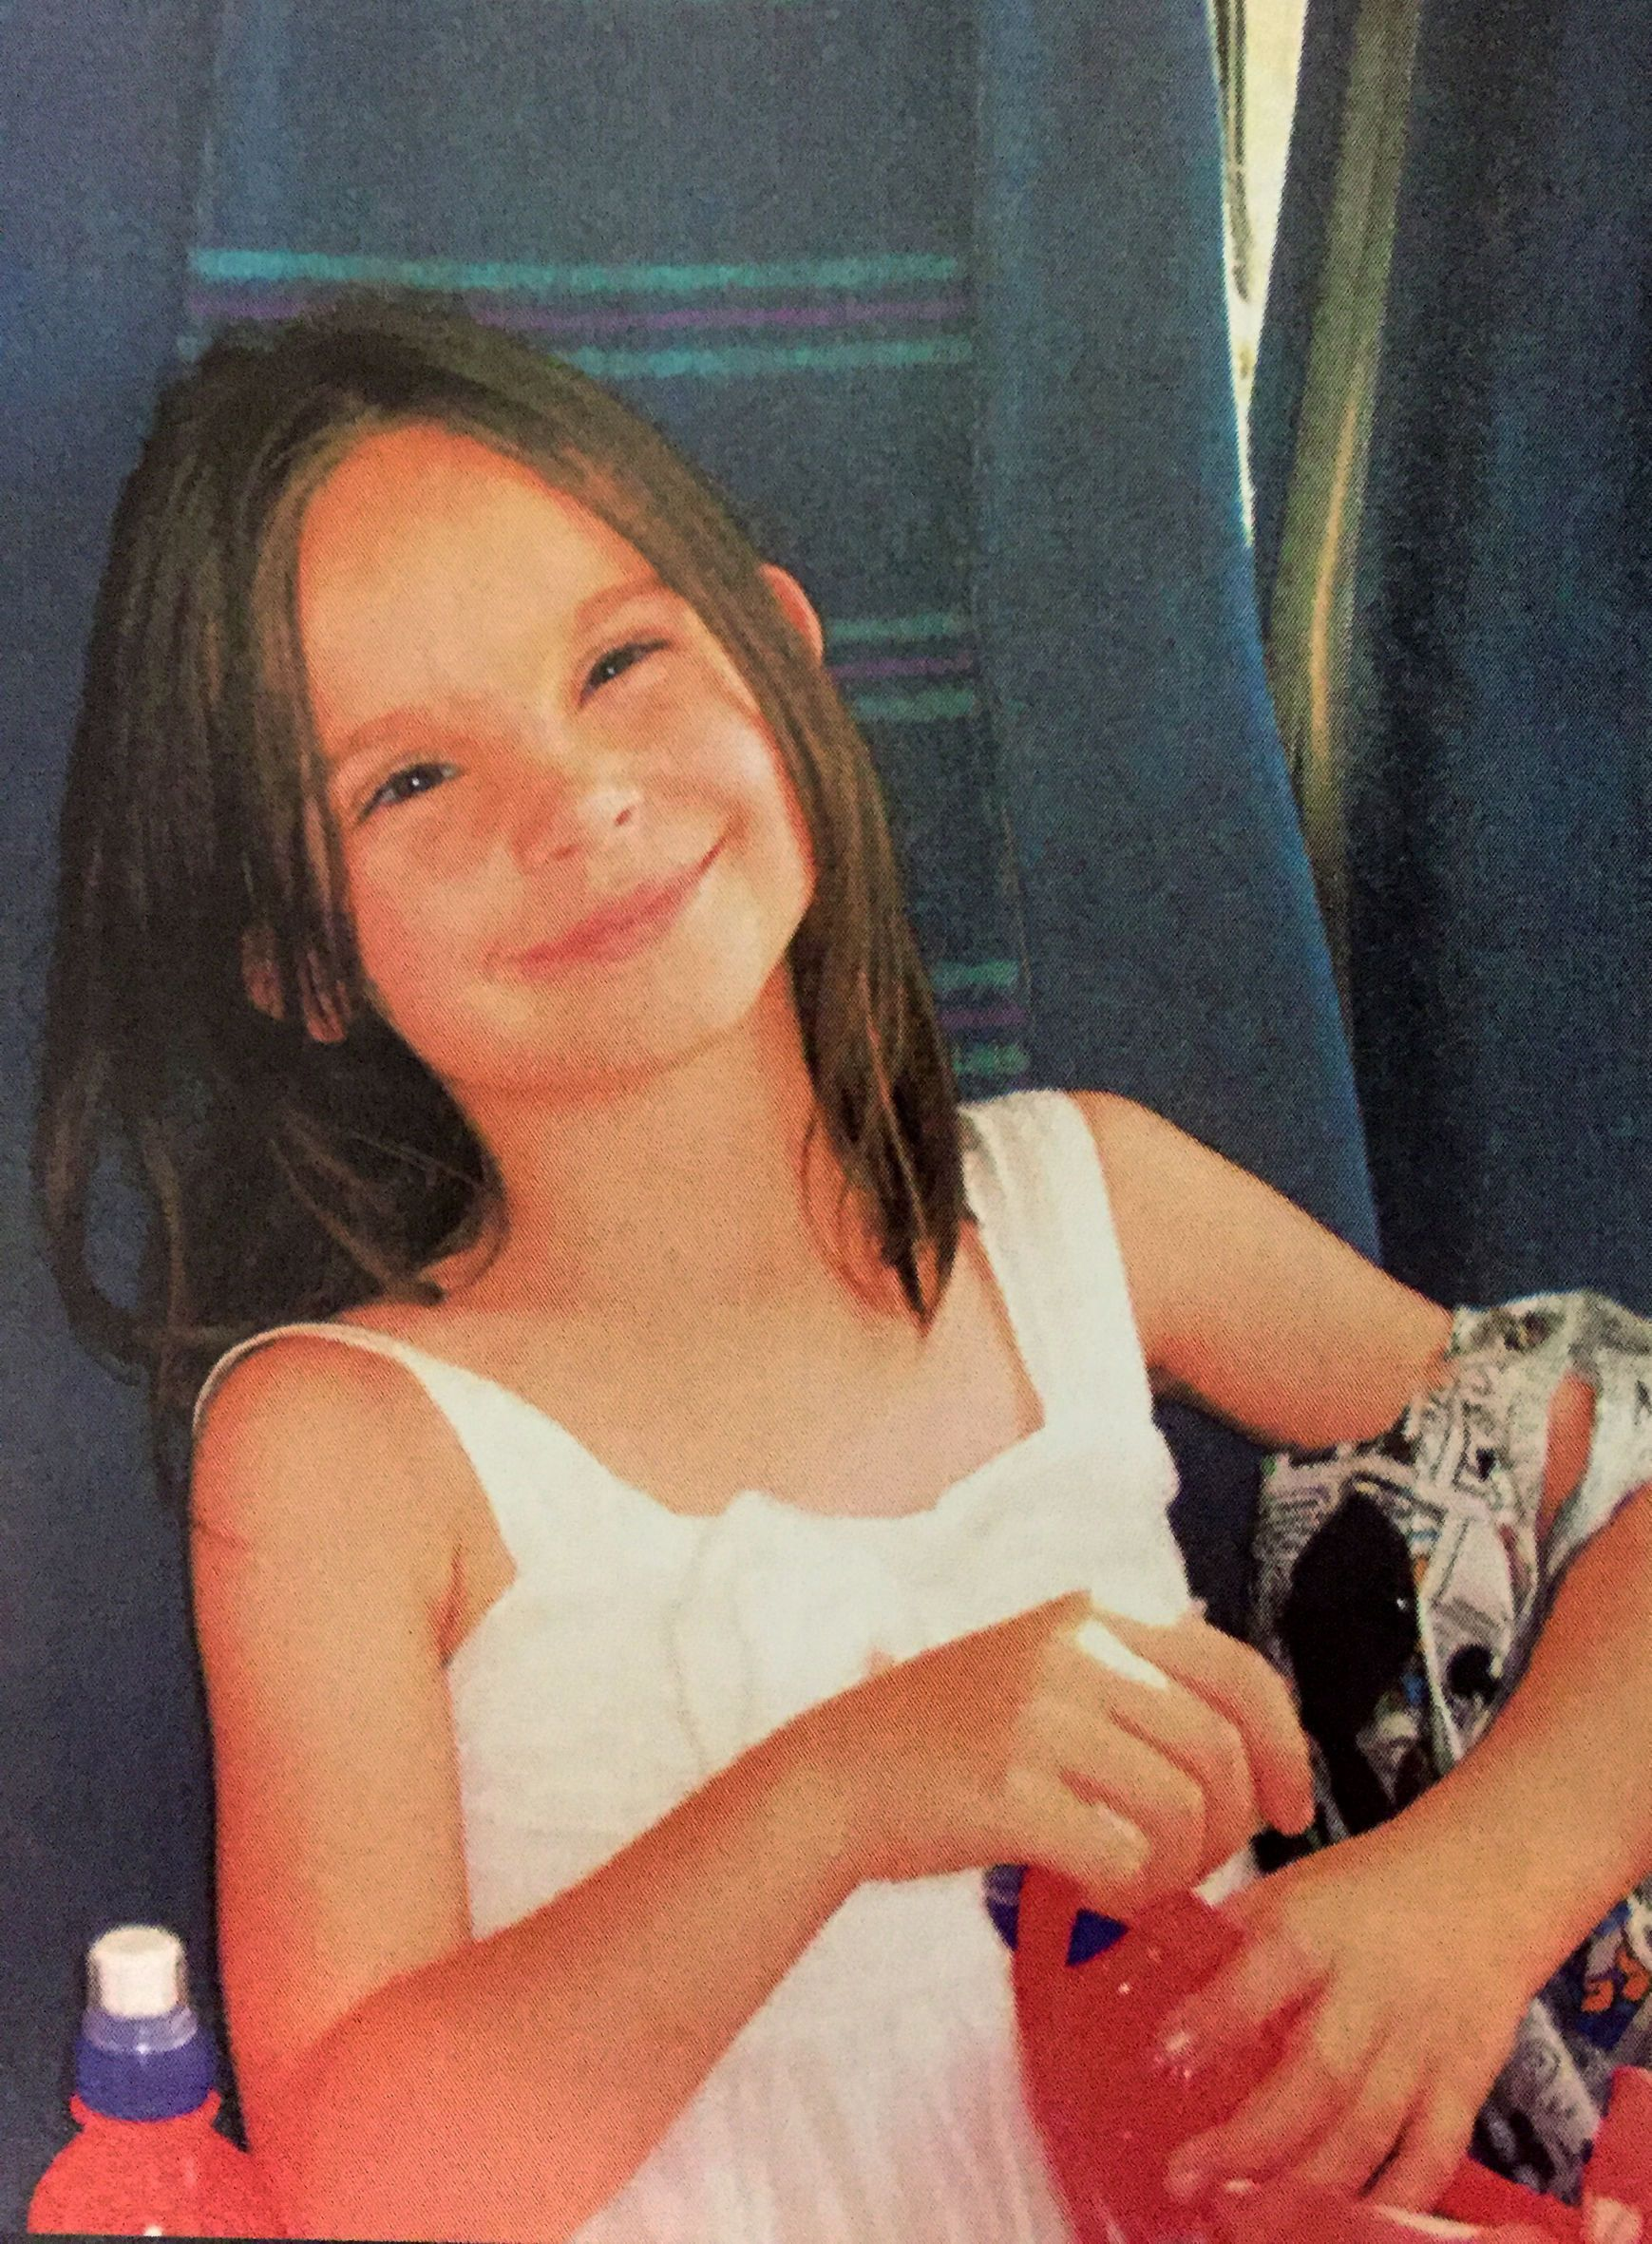 Ellie Butler 'Would Still Be Alive Today' If Agencies Had Acted On Concerns, Grandfather